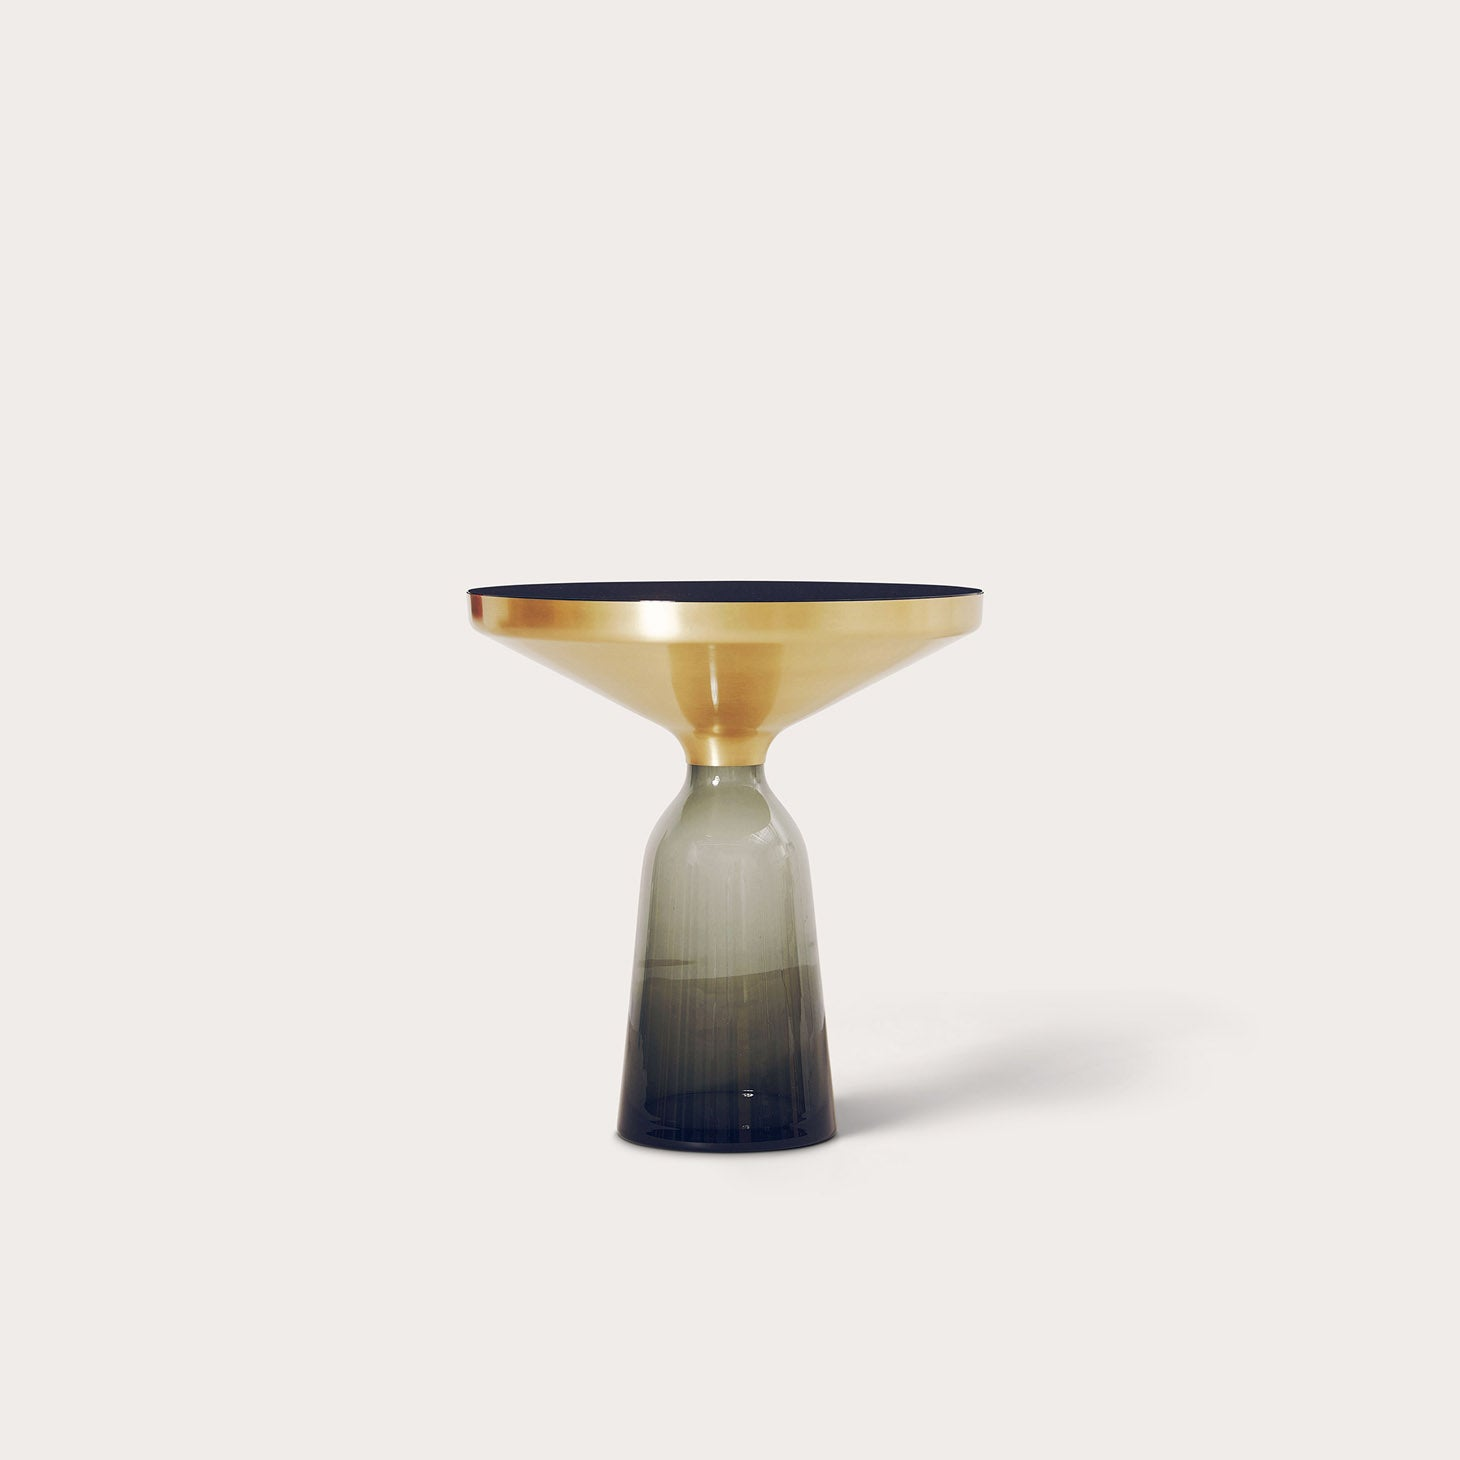 Bell Table Tables Sebastian Herkner Designer Furniture Sku: 001-230-10171